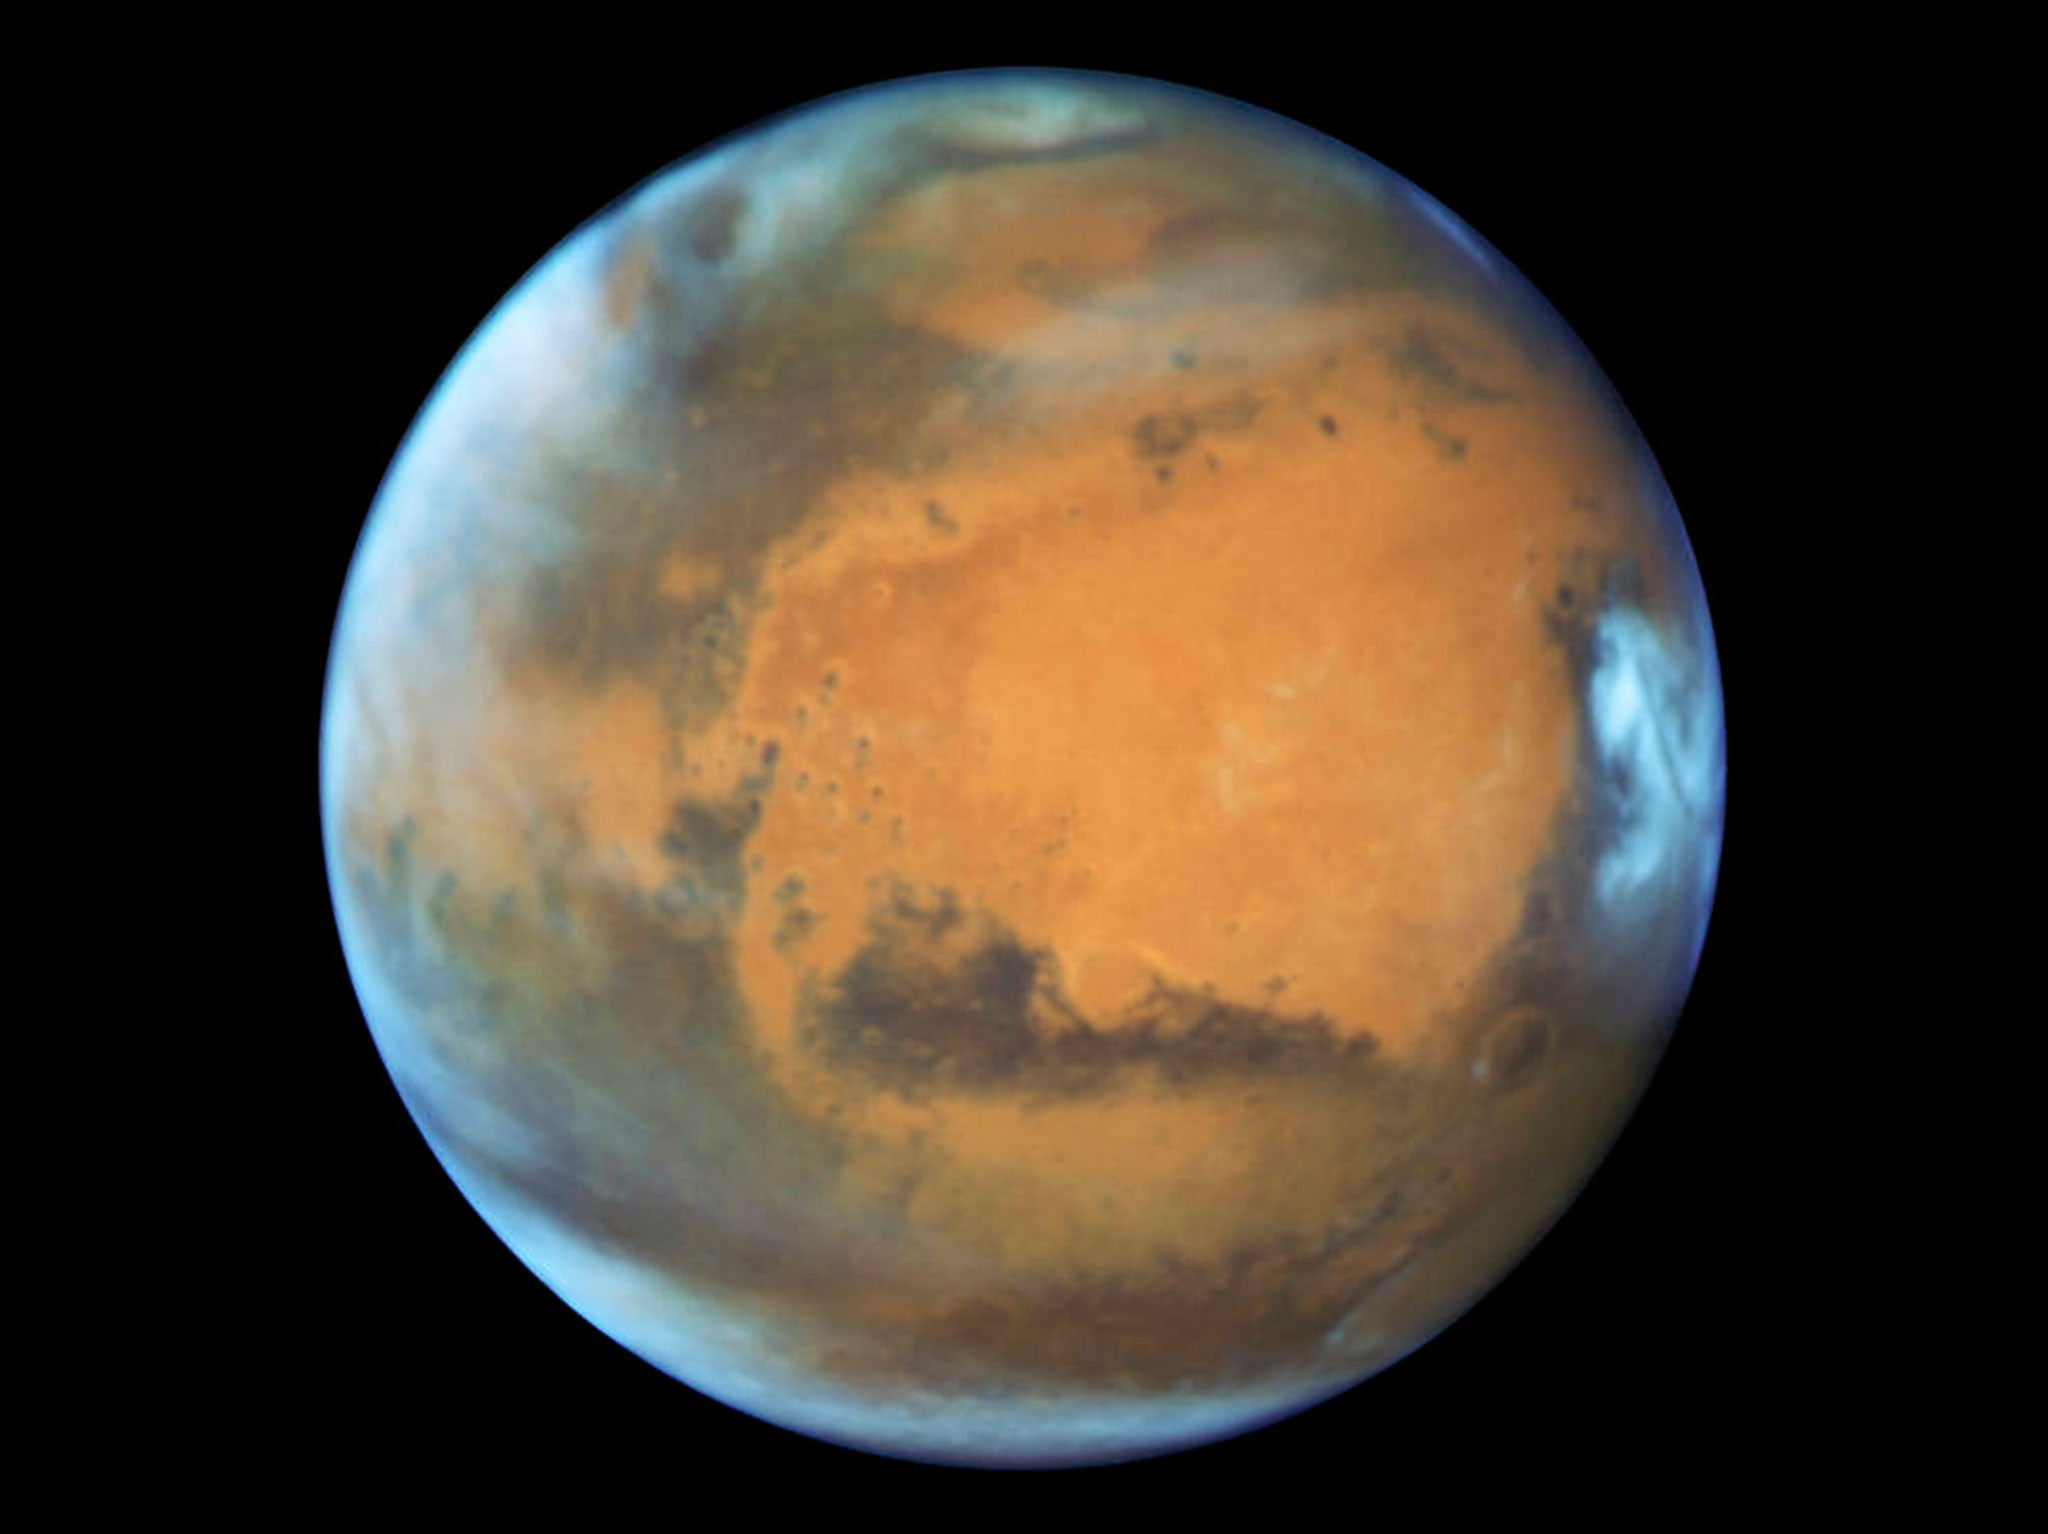 Hubble Space Telescope: Super-detailed image of Mars released by ...